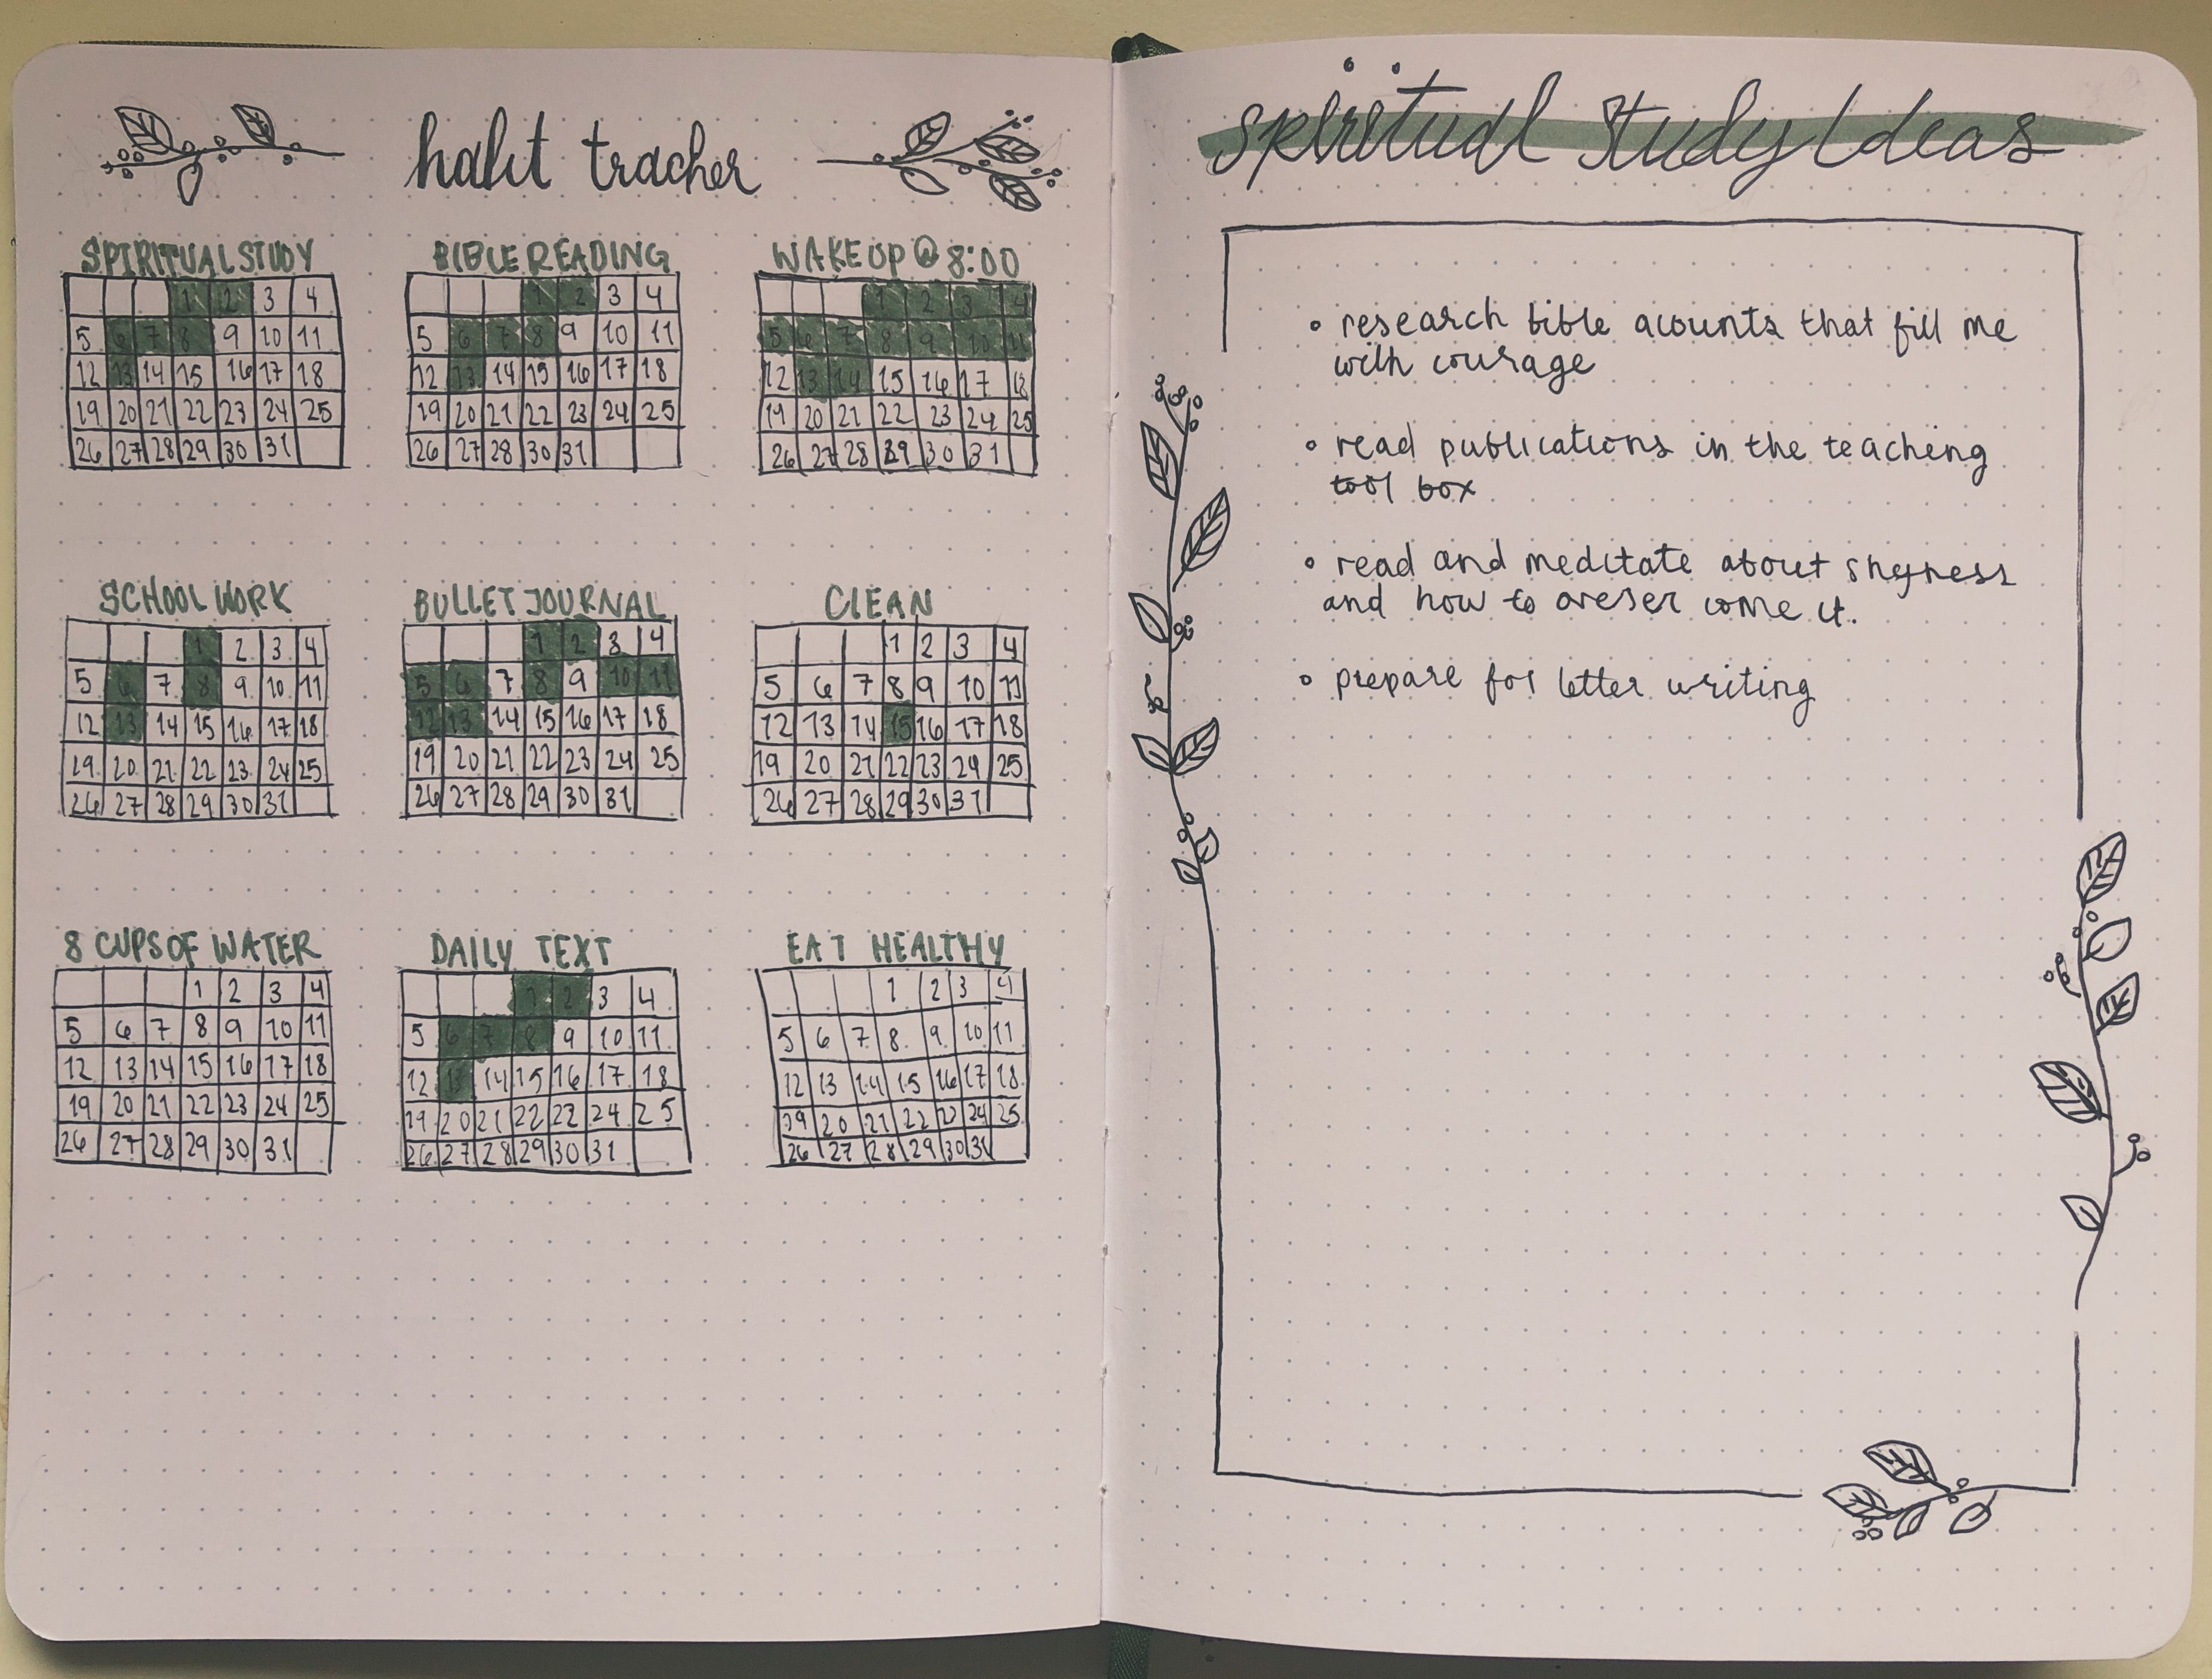 Pin By Ava Dysart On Bullet Journal In